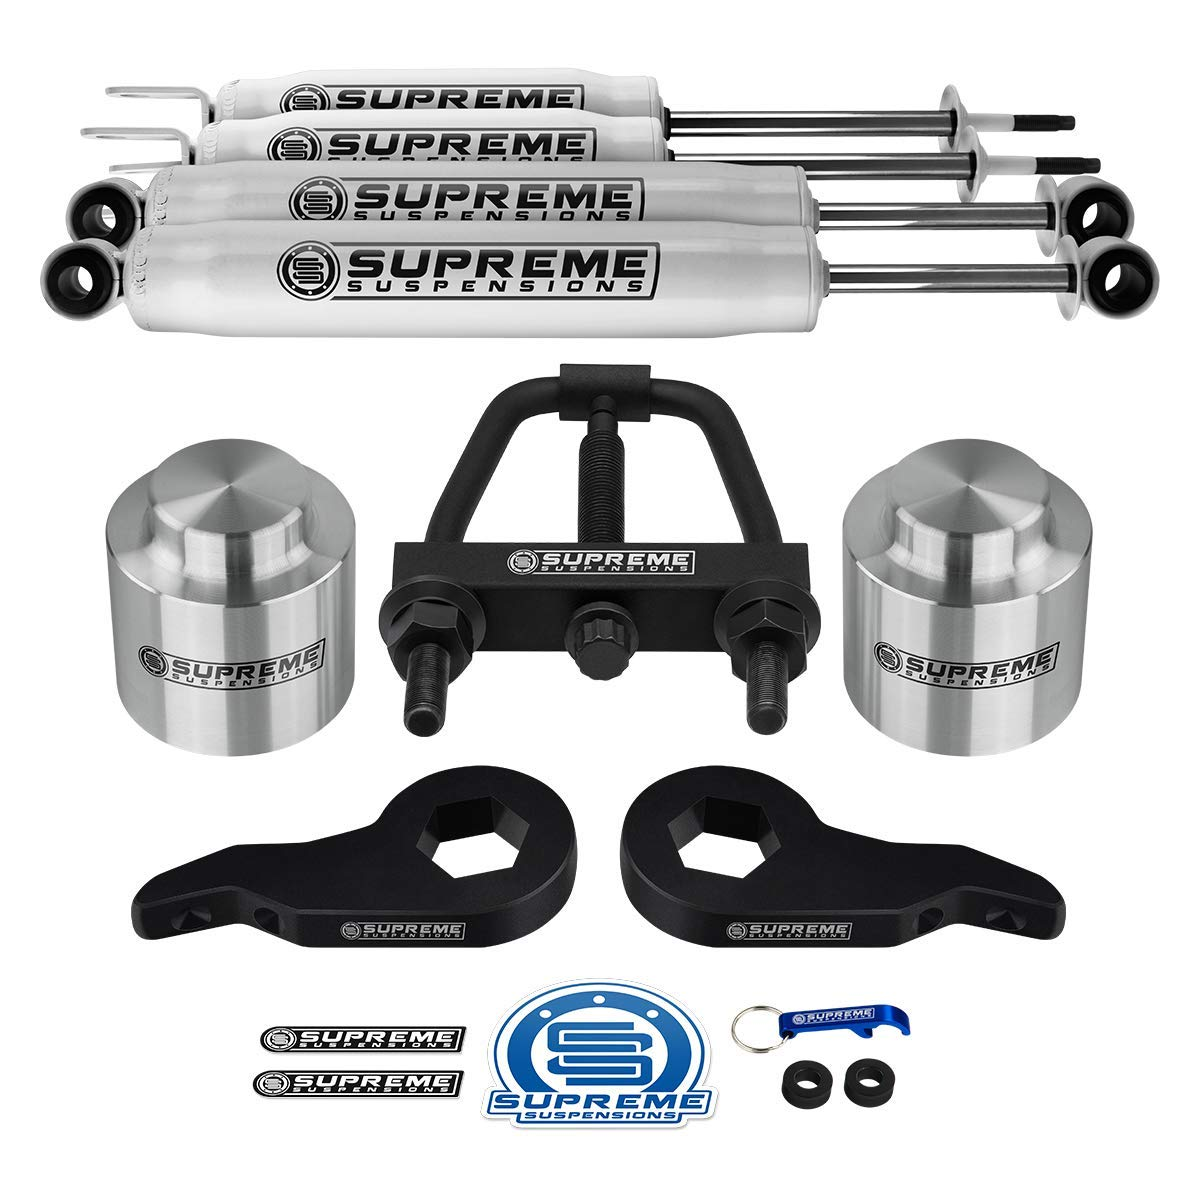 Supreme Suspensions - Complete 3 Inch Suspension Lift Kit with Shock  Absorbers for 2001-2006 Chevy Suburban/Tahoe and GMC Yukon 1500 PRO KIT